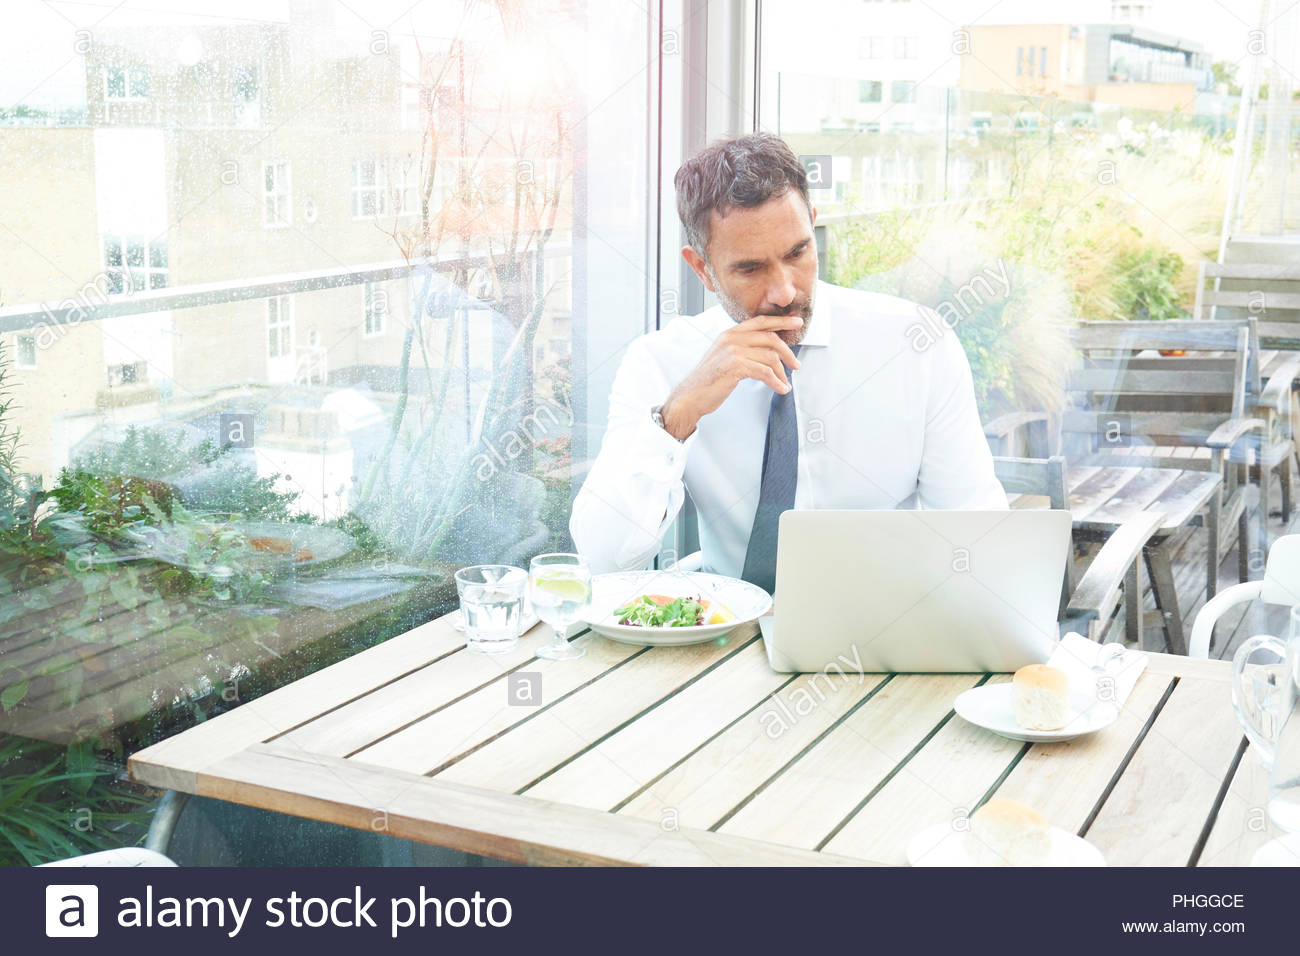 Businessman with laptop by window in restaurant - Stock Image